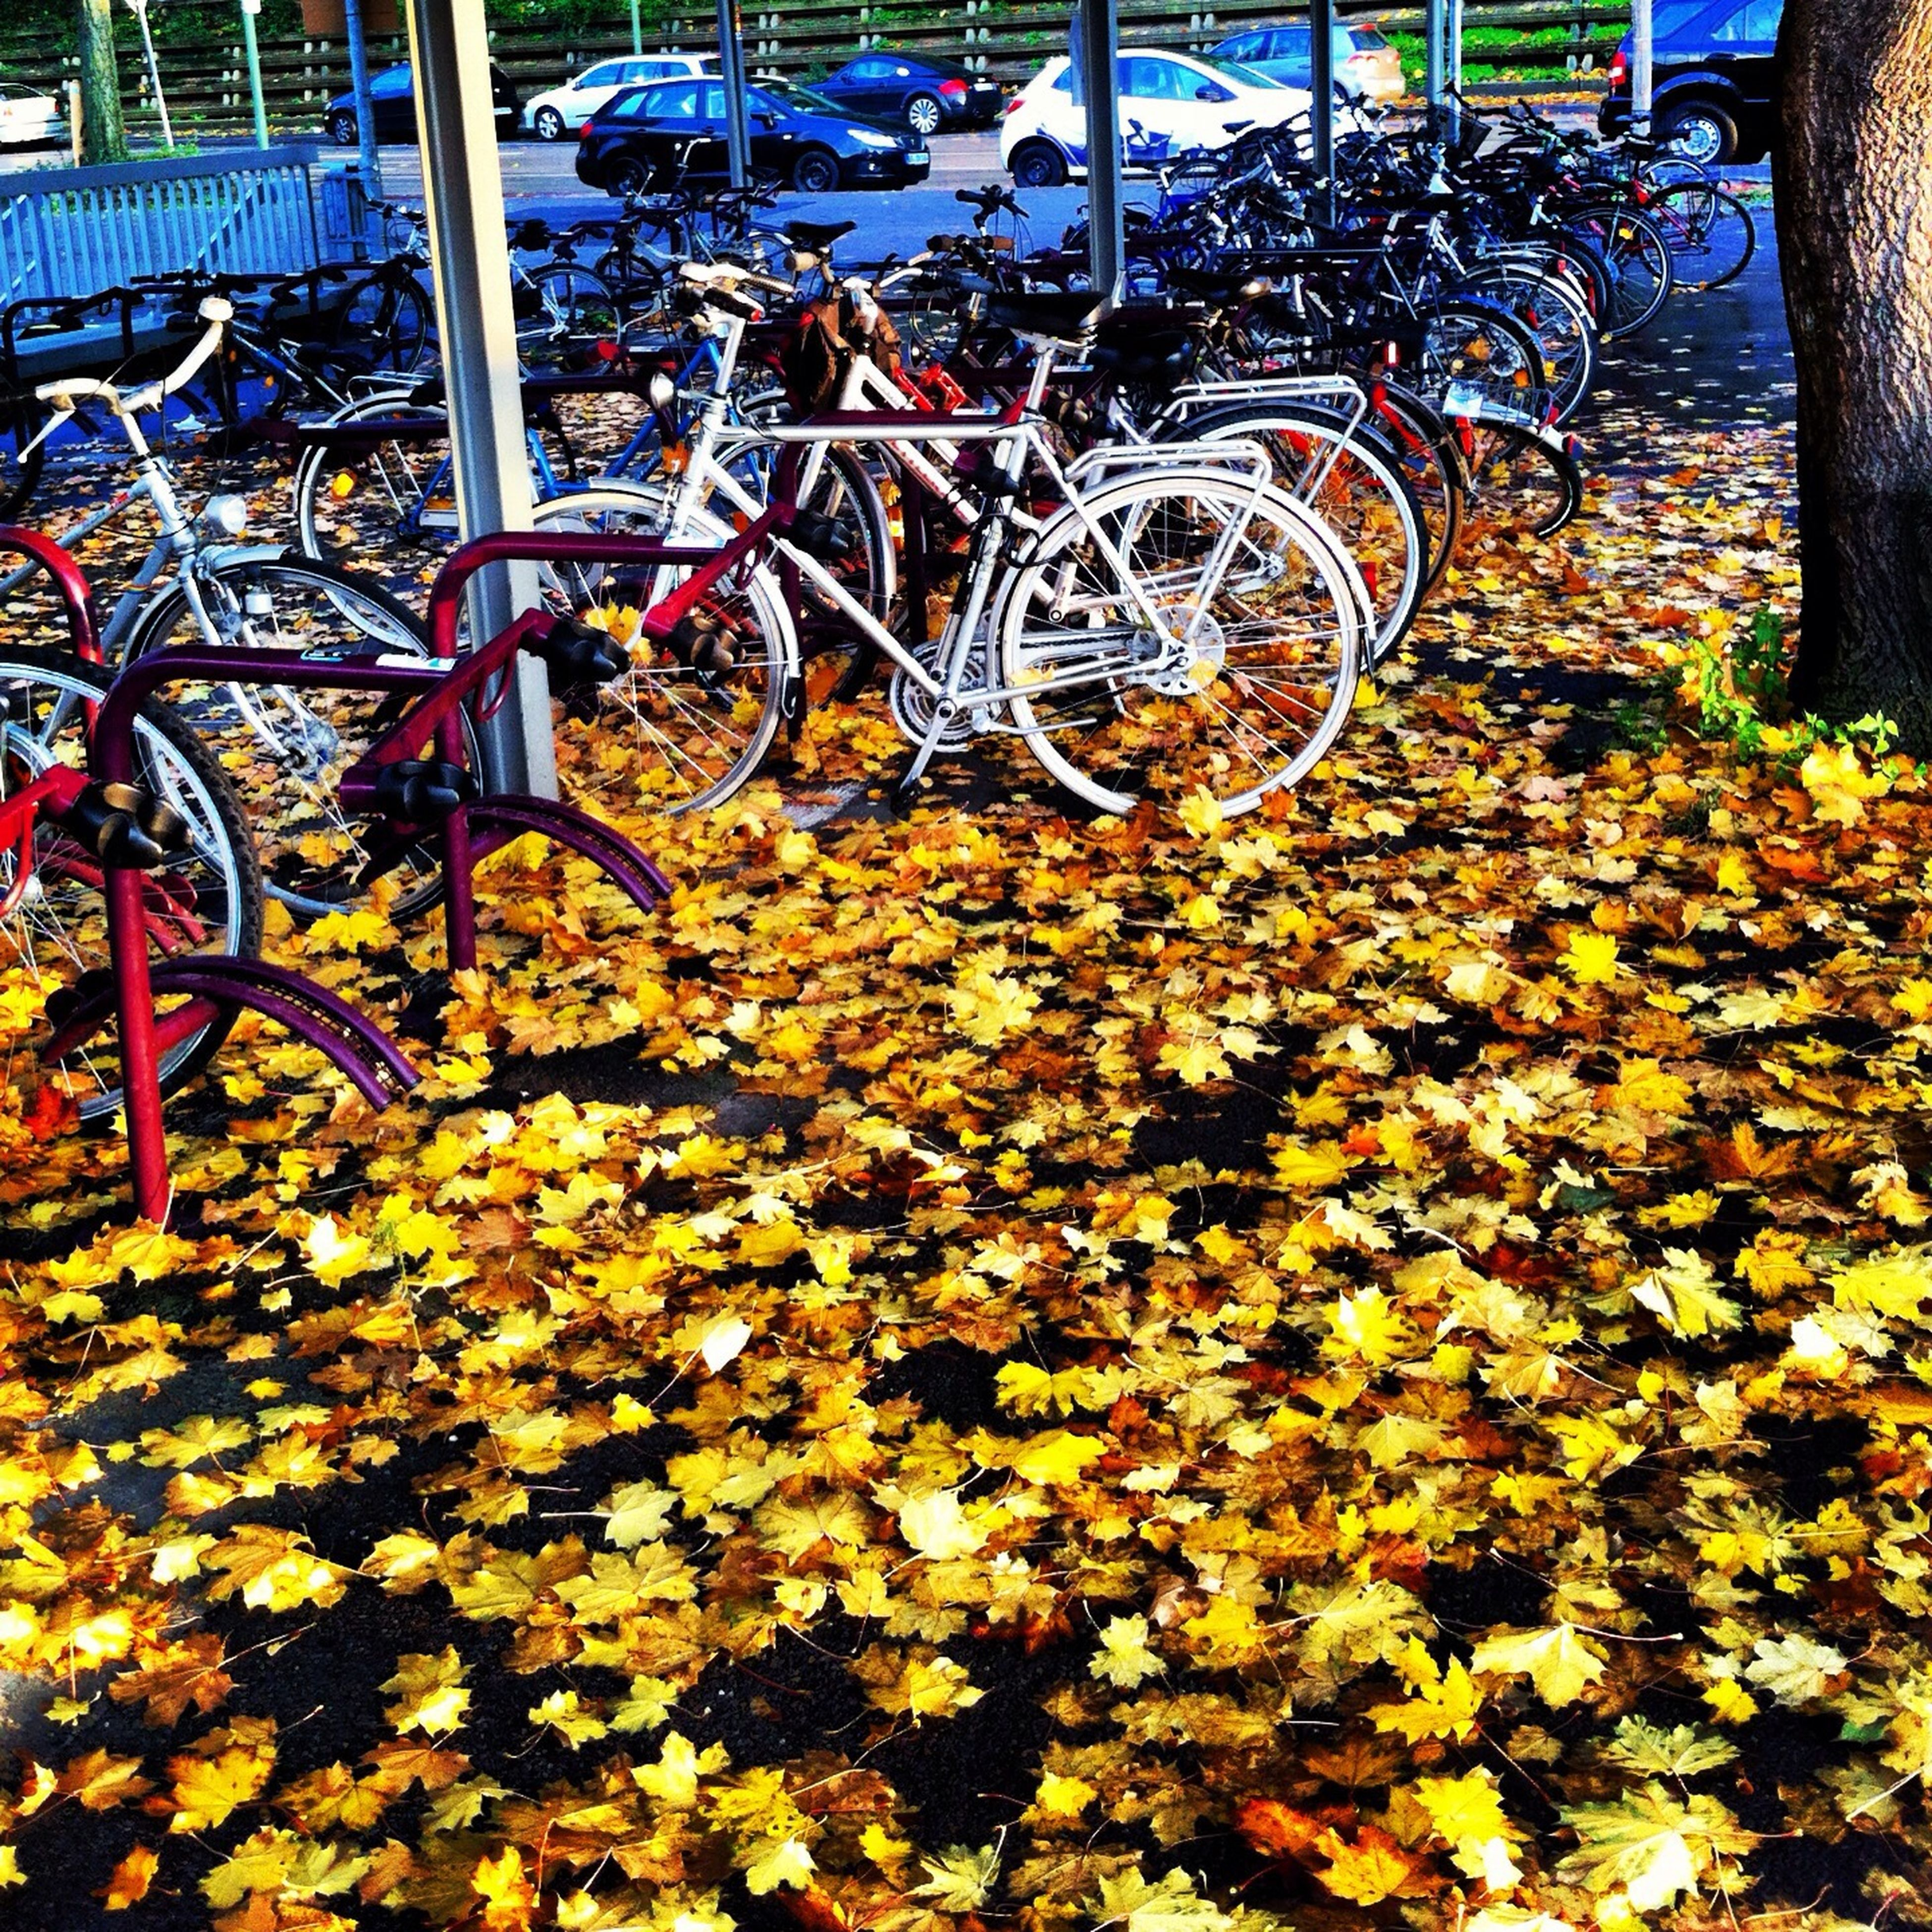 flower, plant, growth, leaf, park - man made space, nature, bicycle, day, outdoors, autumn, fragility, front or back yard, freshness, potted plant, fence, yellow, abundance, change, season, beauty in nature